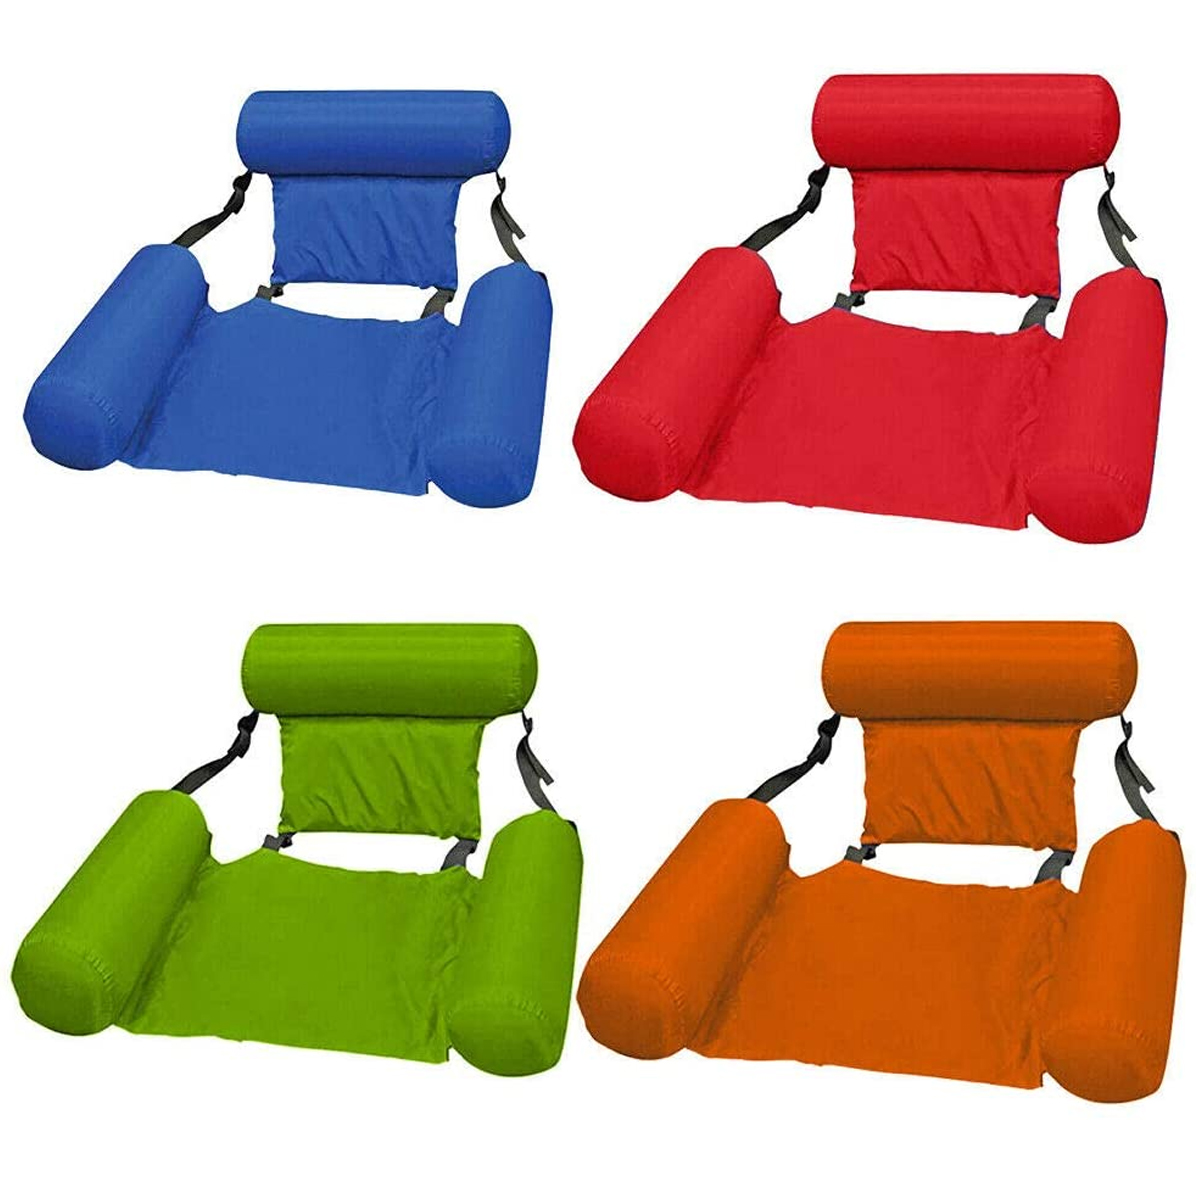 Water Lounge Chair Summer Swimming Inflatable Foldable Floating Row Backrest Air Mat Party Pool Toy 7